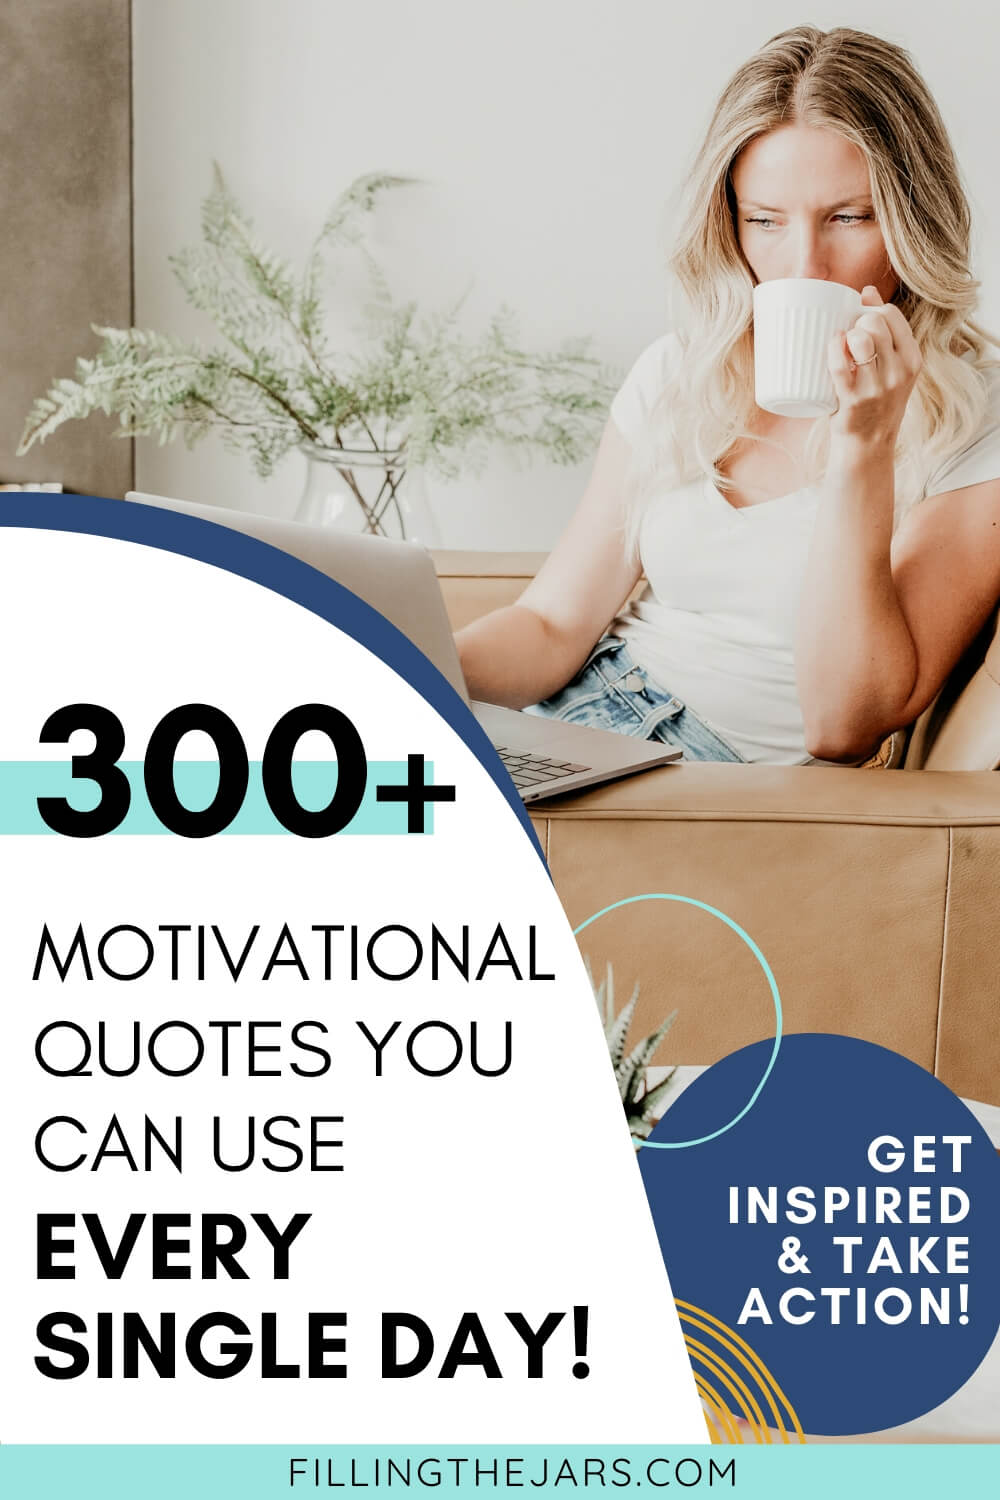 woman drinking coffee while browsing laptop with various shape overlays and text 300 motivational quotes to use every day